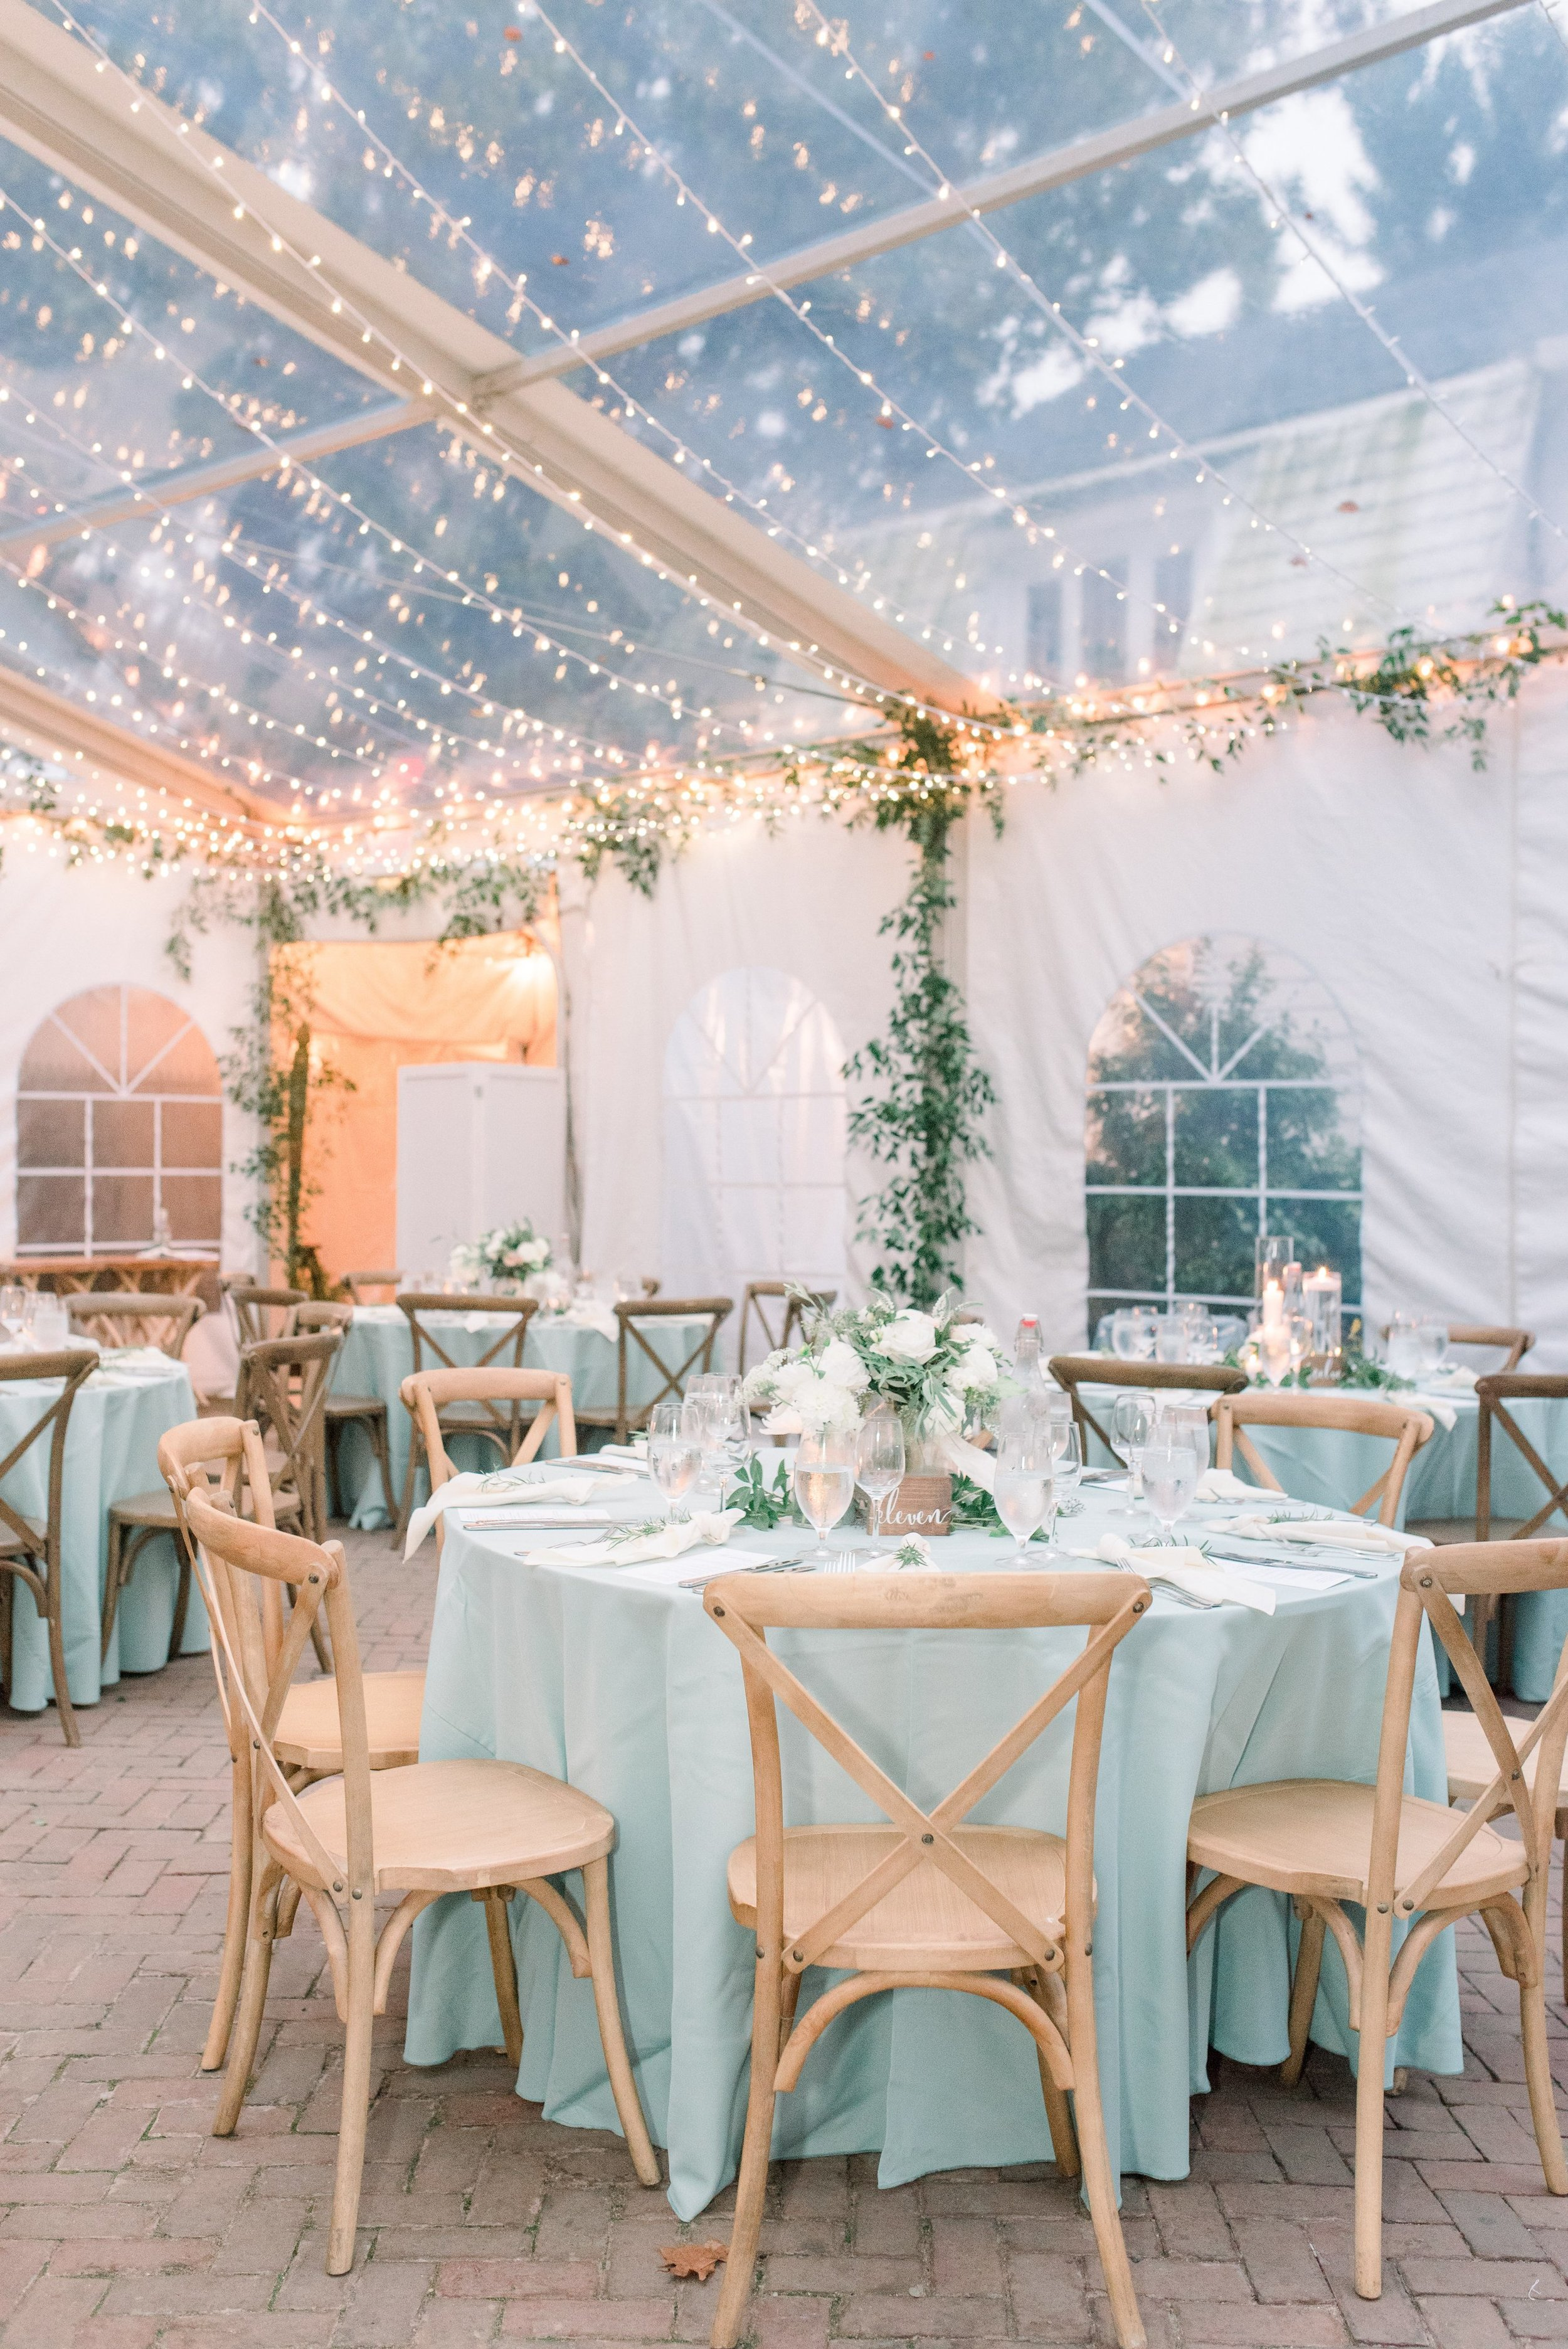 NJ Wedding, Inn at Fernbrook Farms, Tent Wedding, Greenery, Muted Wedding, Cassi Claire Photography